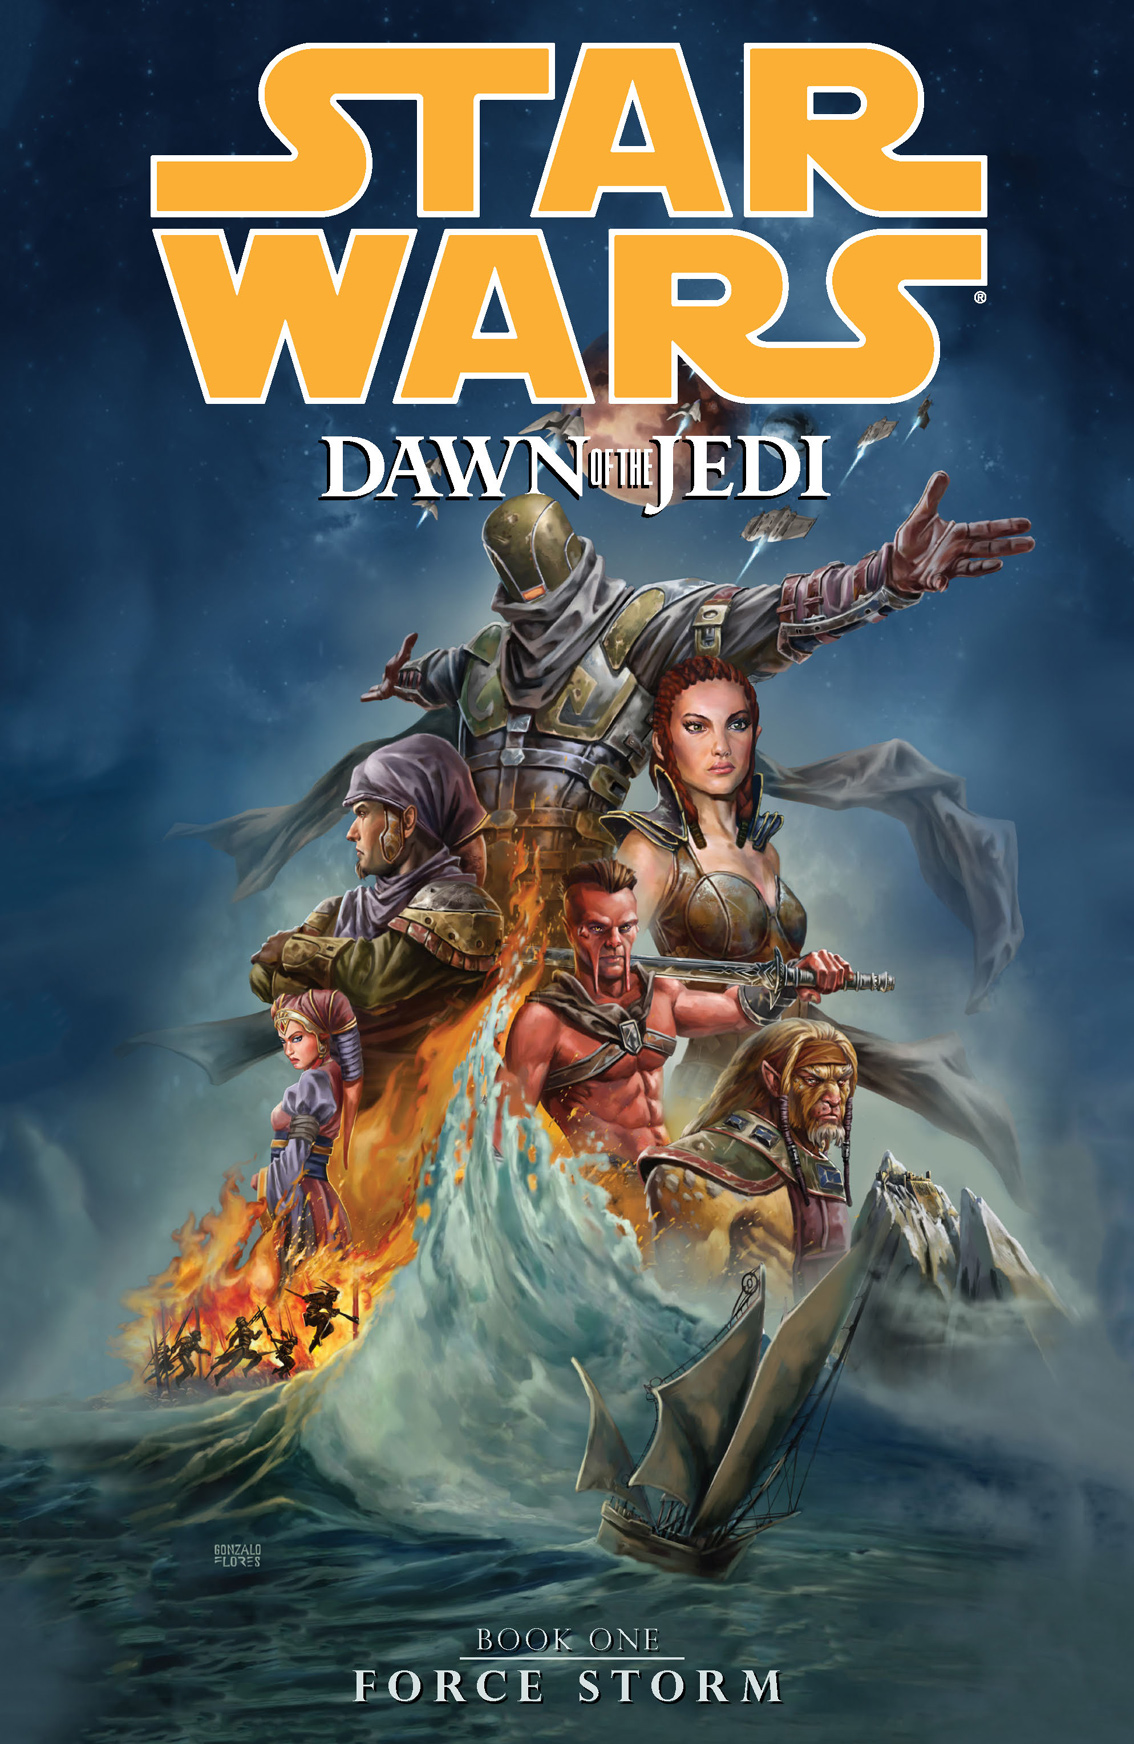 Star Wars: Dawn of the Jedi Volume 1Force Storm